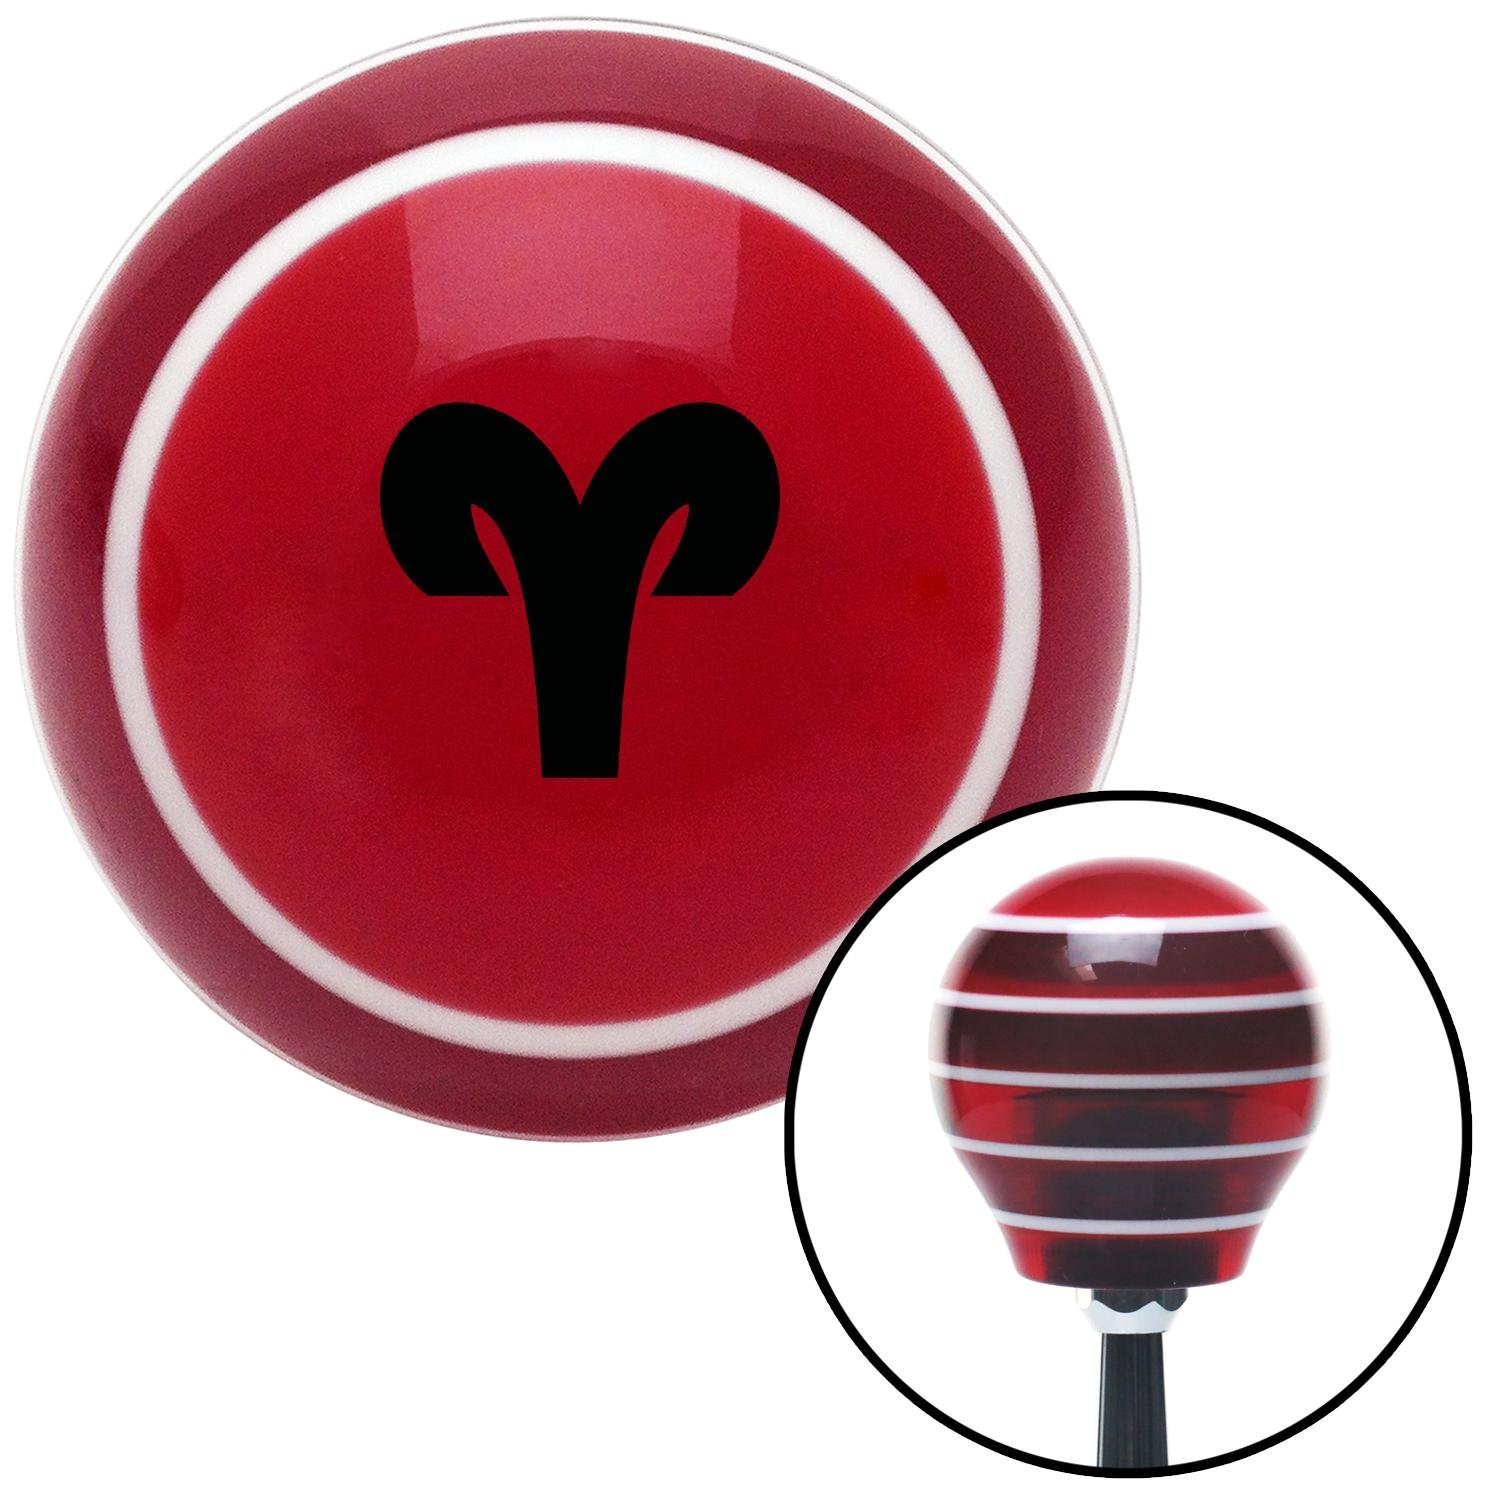 American Shifter 273974 Shift Knob Black Aries Red Stripe with M16 x 1.5 Insert